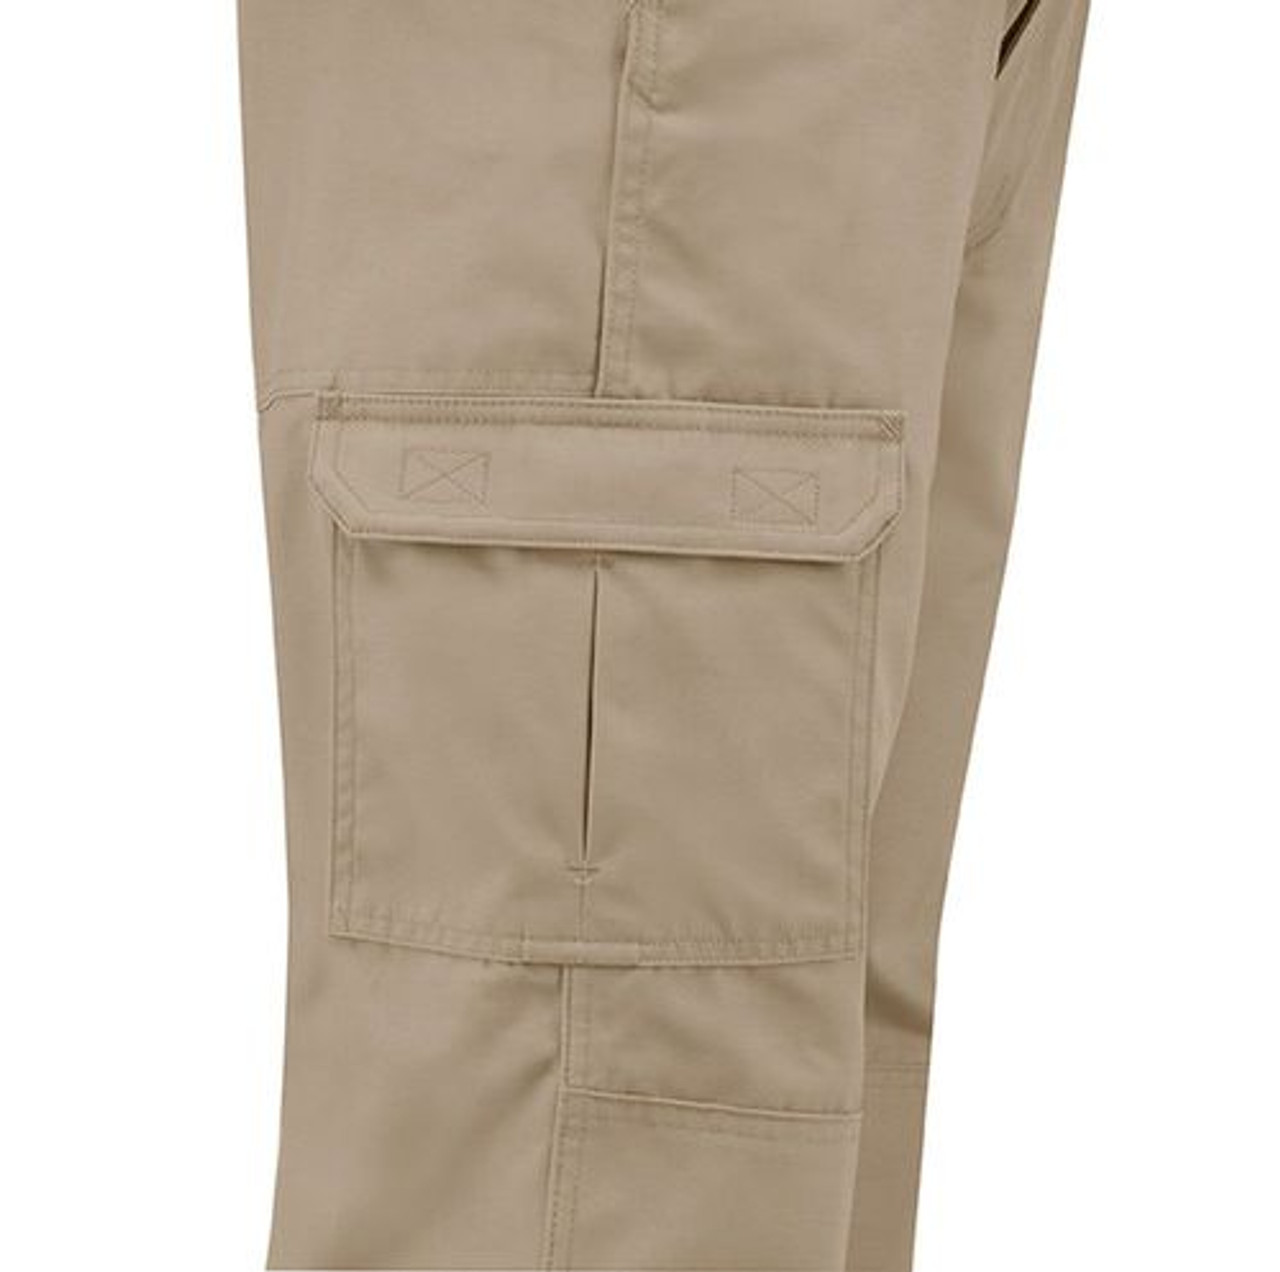 Propper F5252-82 Men's Canvas Tactical Cargo Pants, Relaxed Fit, Adjustable Waistband, D-ring and Knee Pad Pocket, Polyester/Cotton with Teflon Fabric Protector